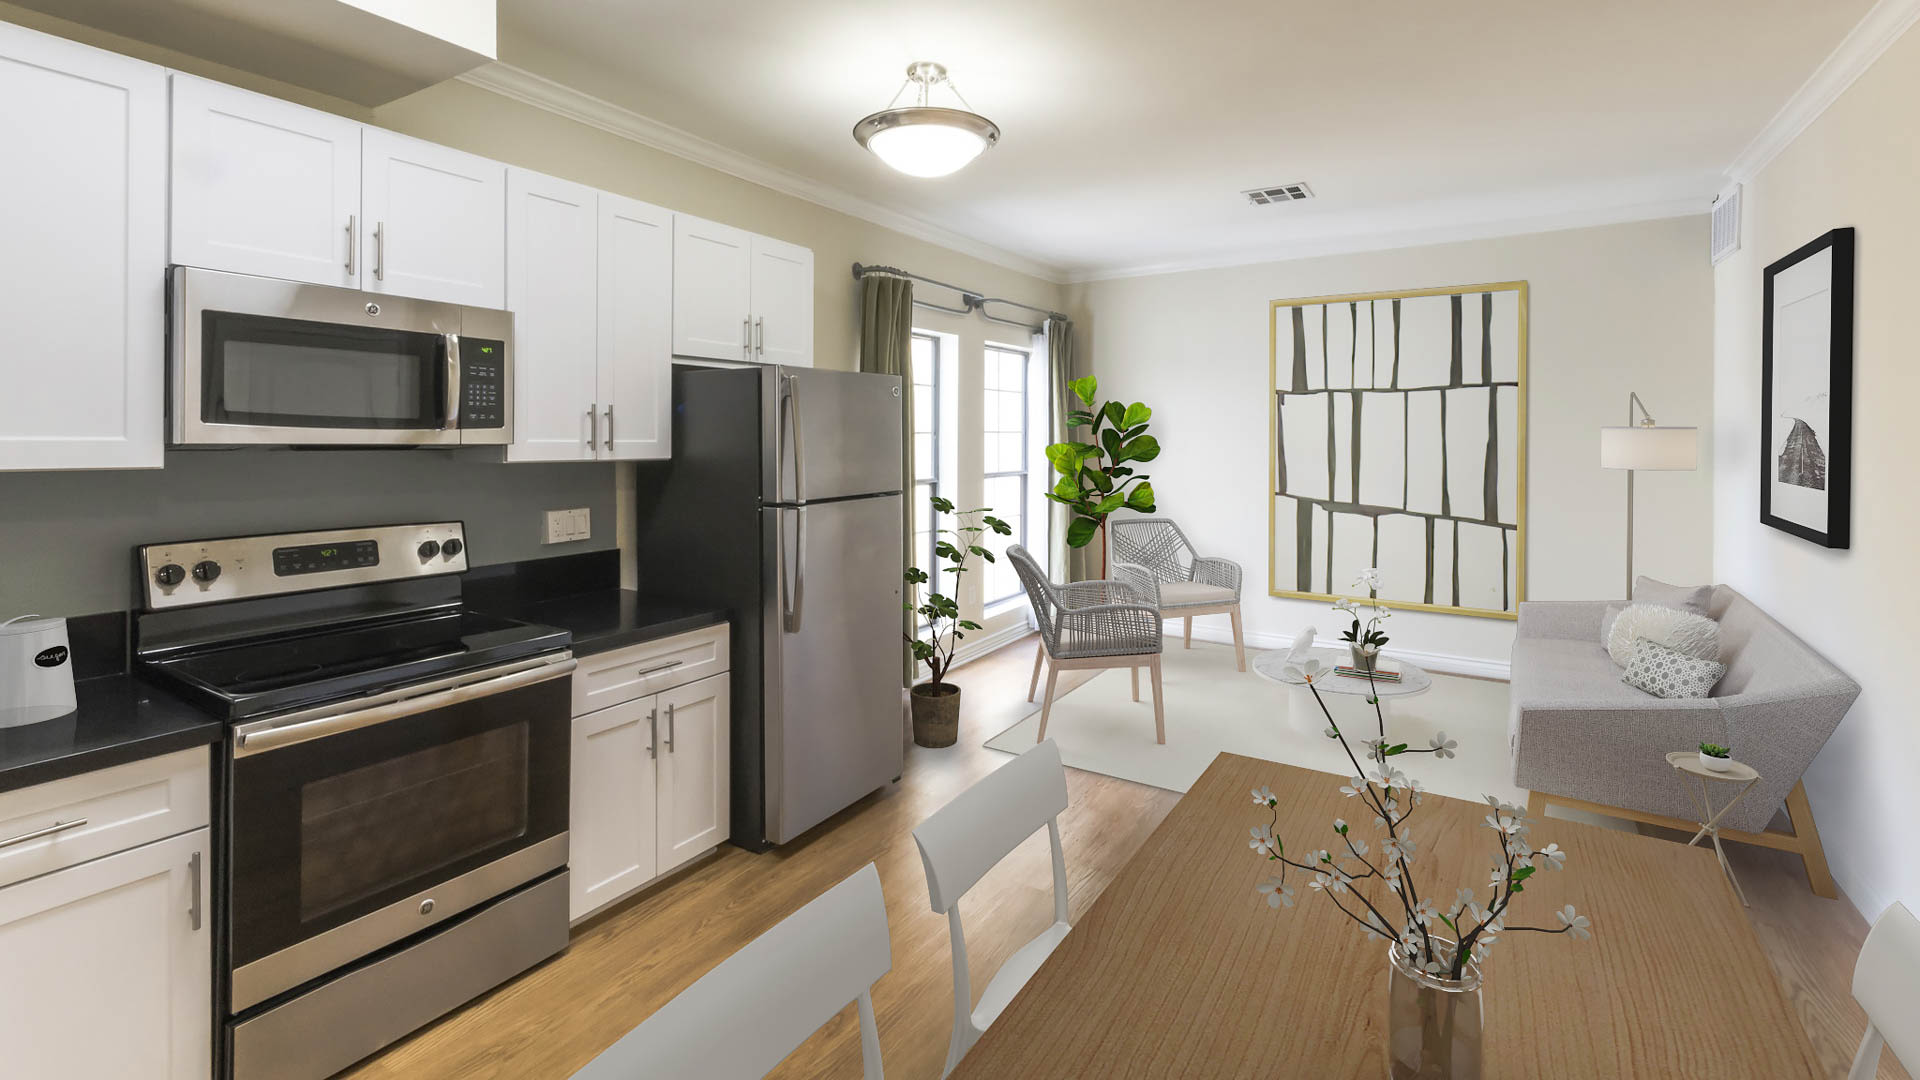 425 Broadway Apartments - Kitchen and Living Area